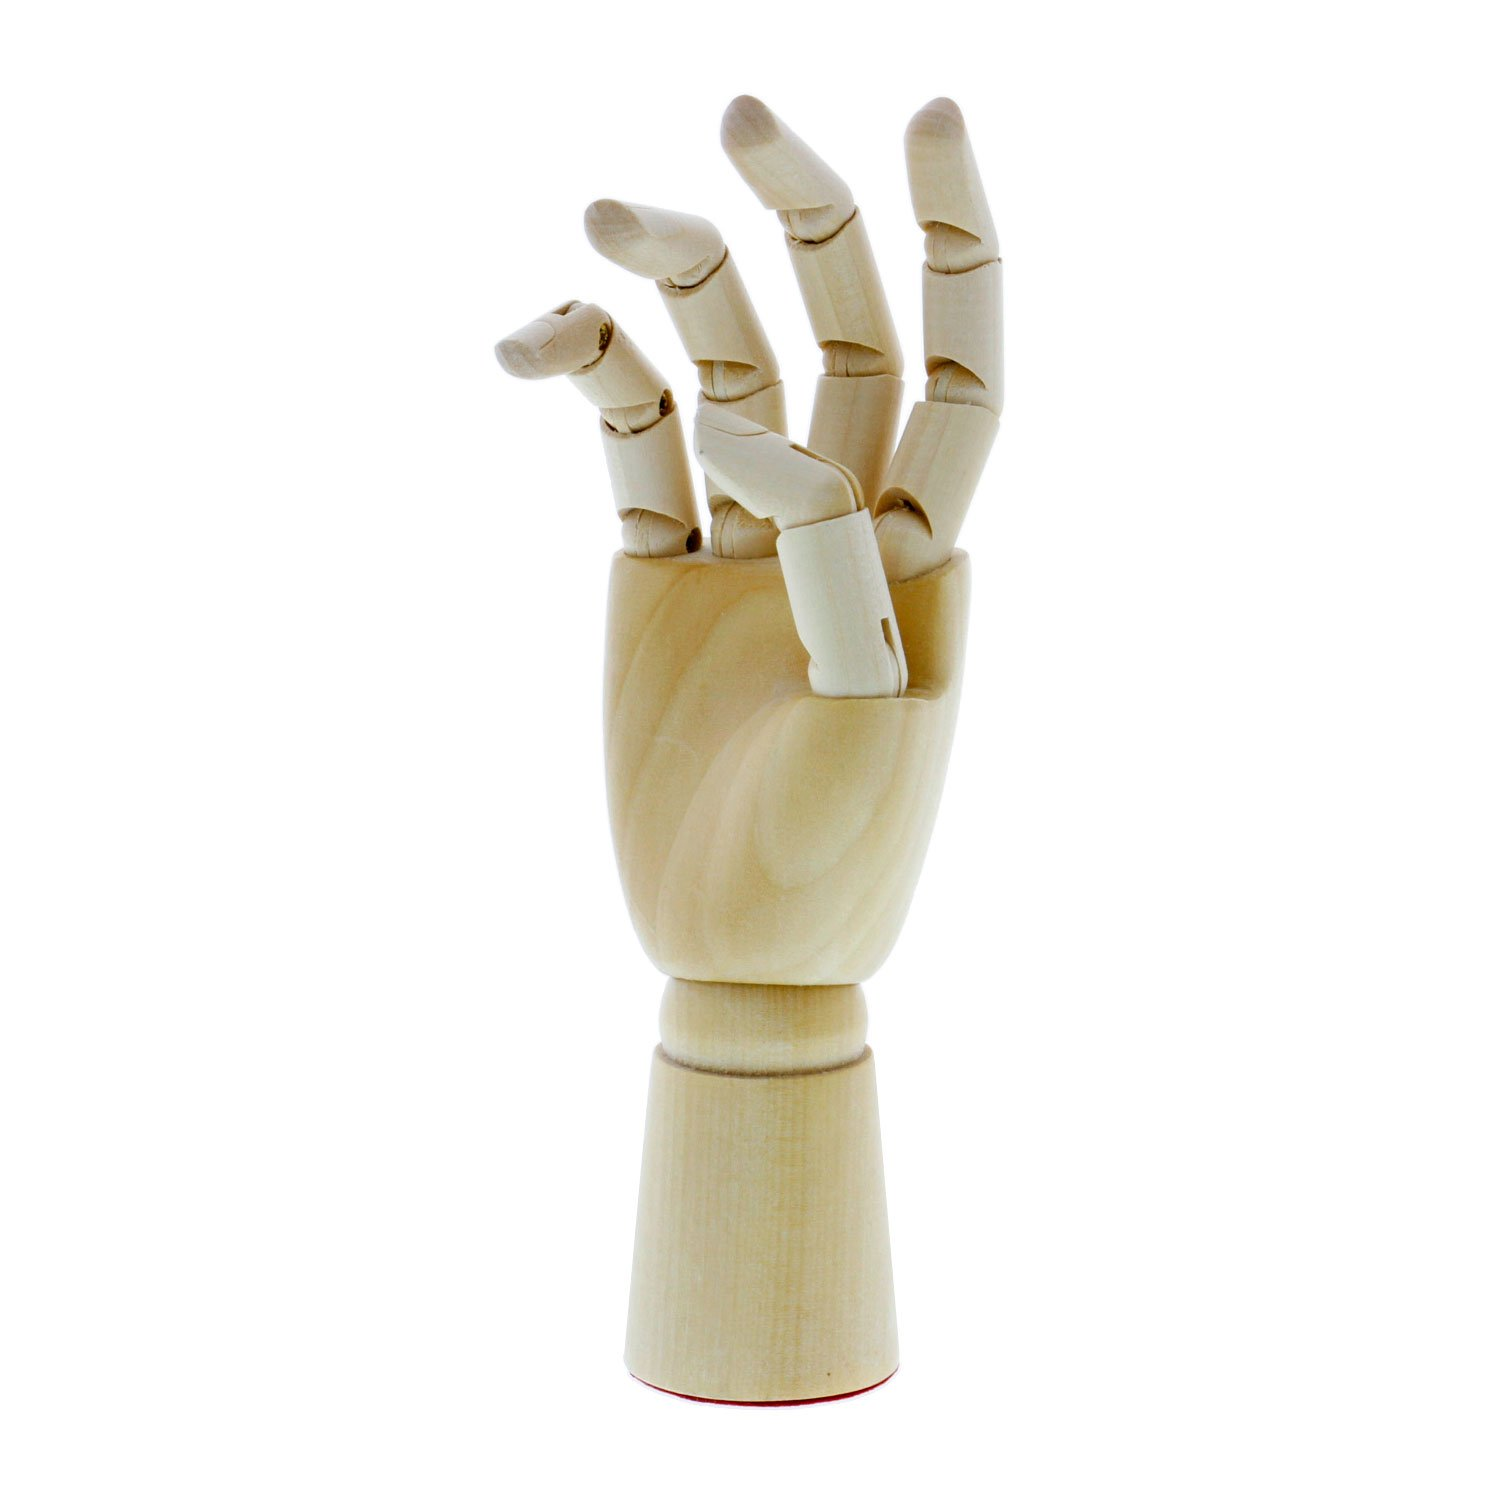 US Art Supply Wood Artist Drawing Manikin Articulated Mannequin with Wooden Flexible Fingers - Perfect for drawing the human hand (7 Right Hand)